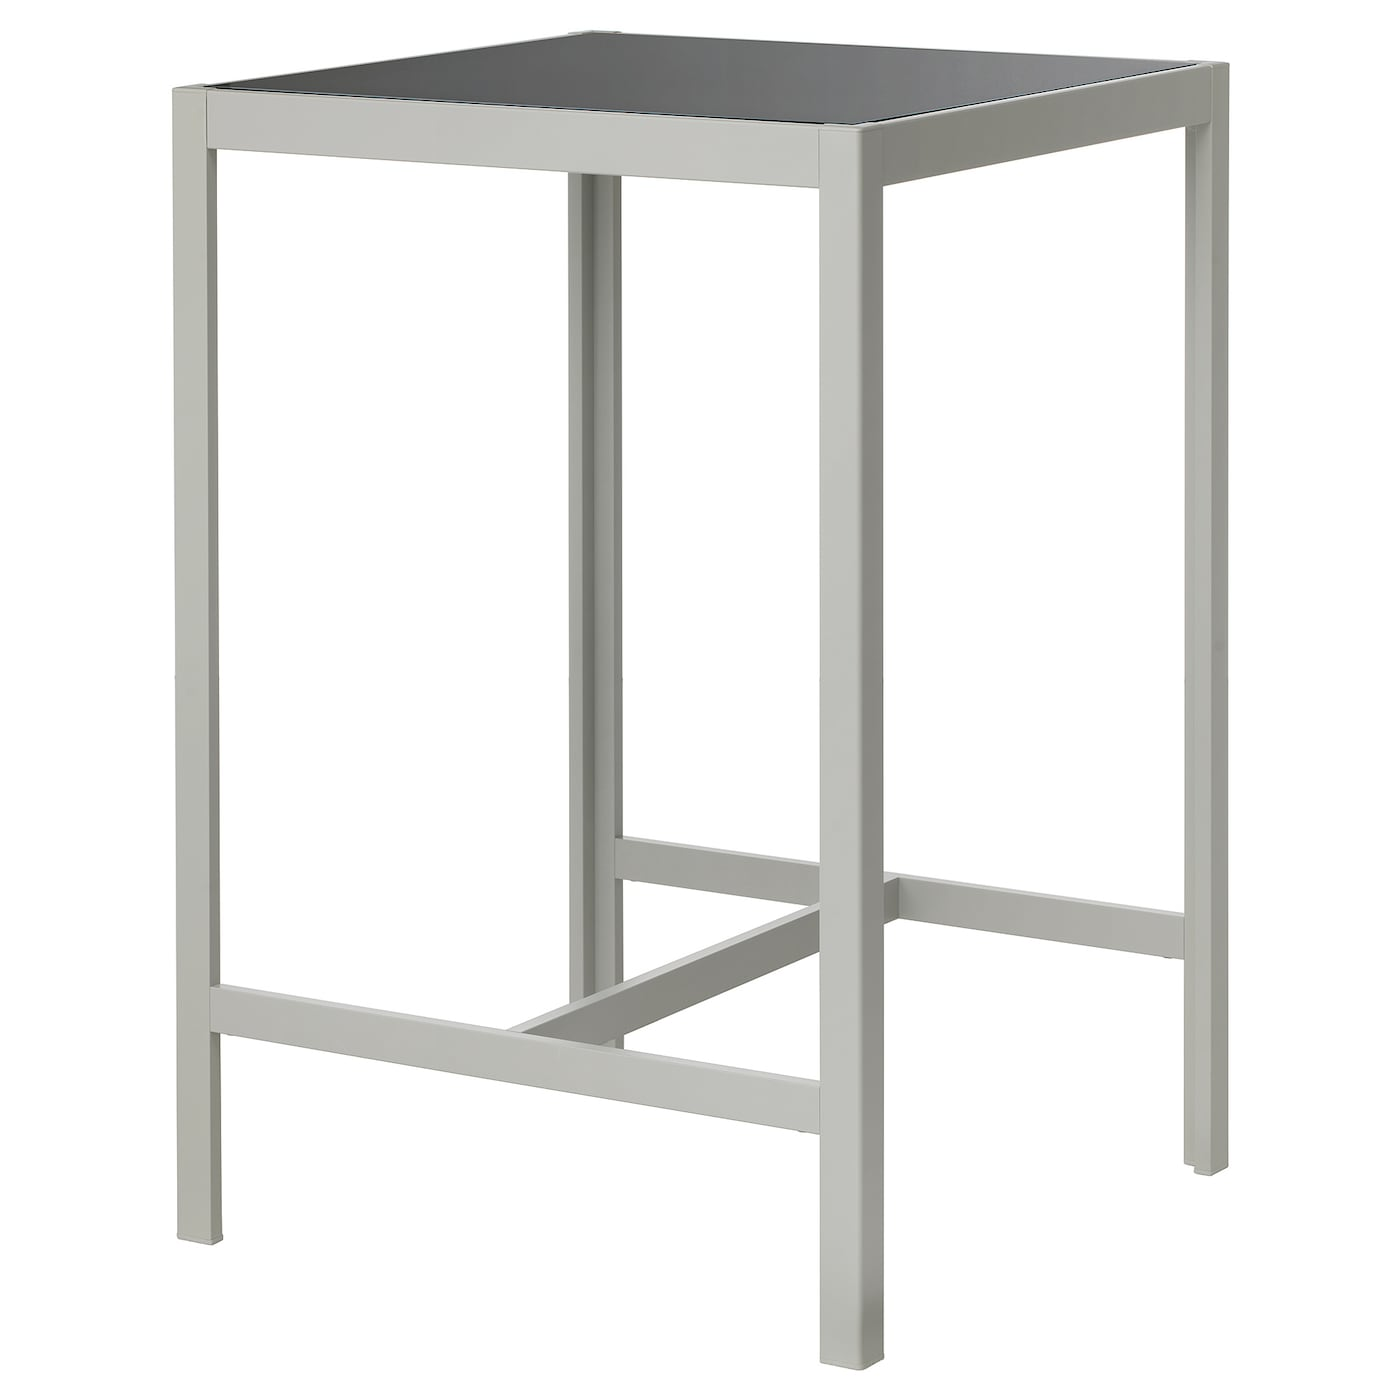 IKEA SJÄLLAND bar table, outdoor Easy to keep clean – just wipe with a damp cloth.